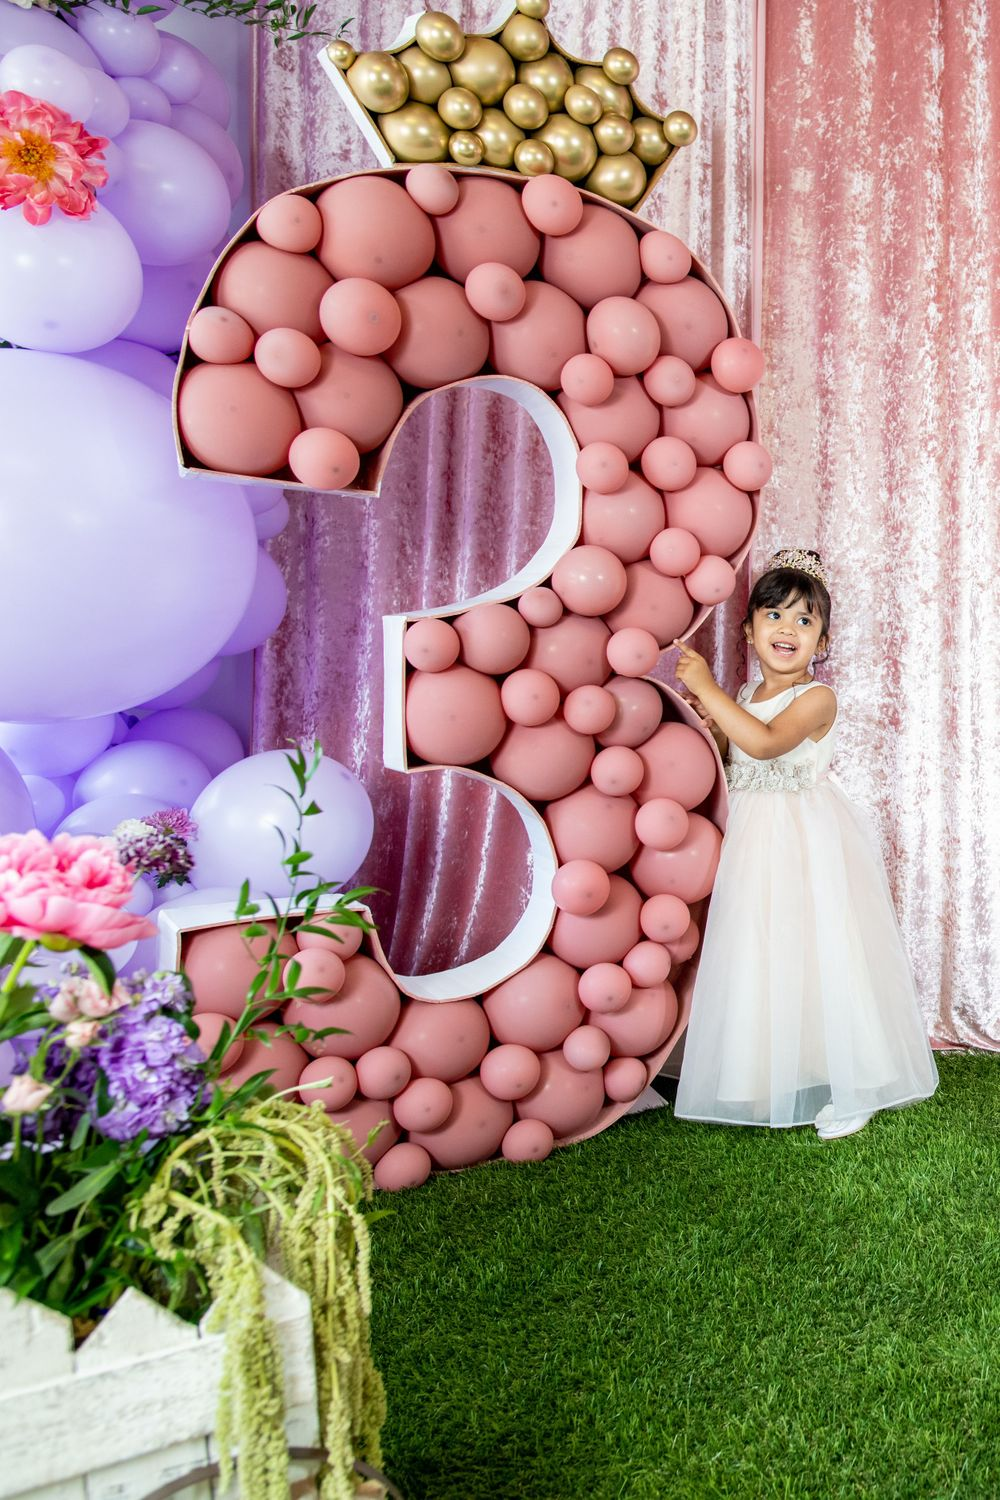 Moms Kloset Balloons - Princess Theme - Girl celebrates third birthday party